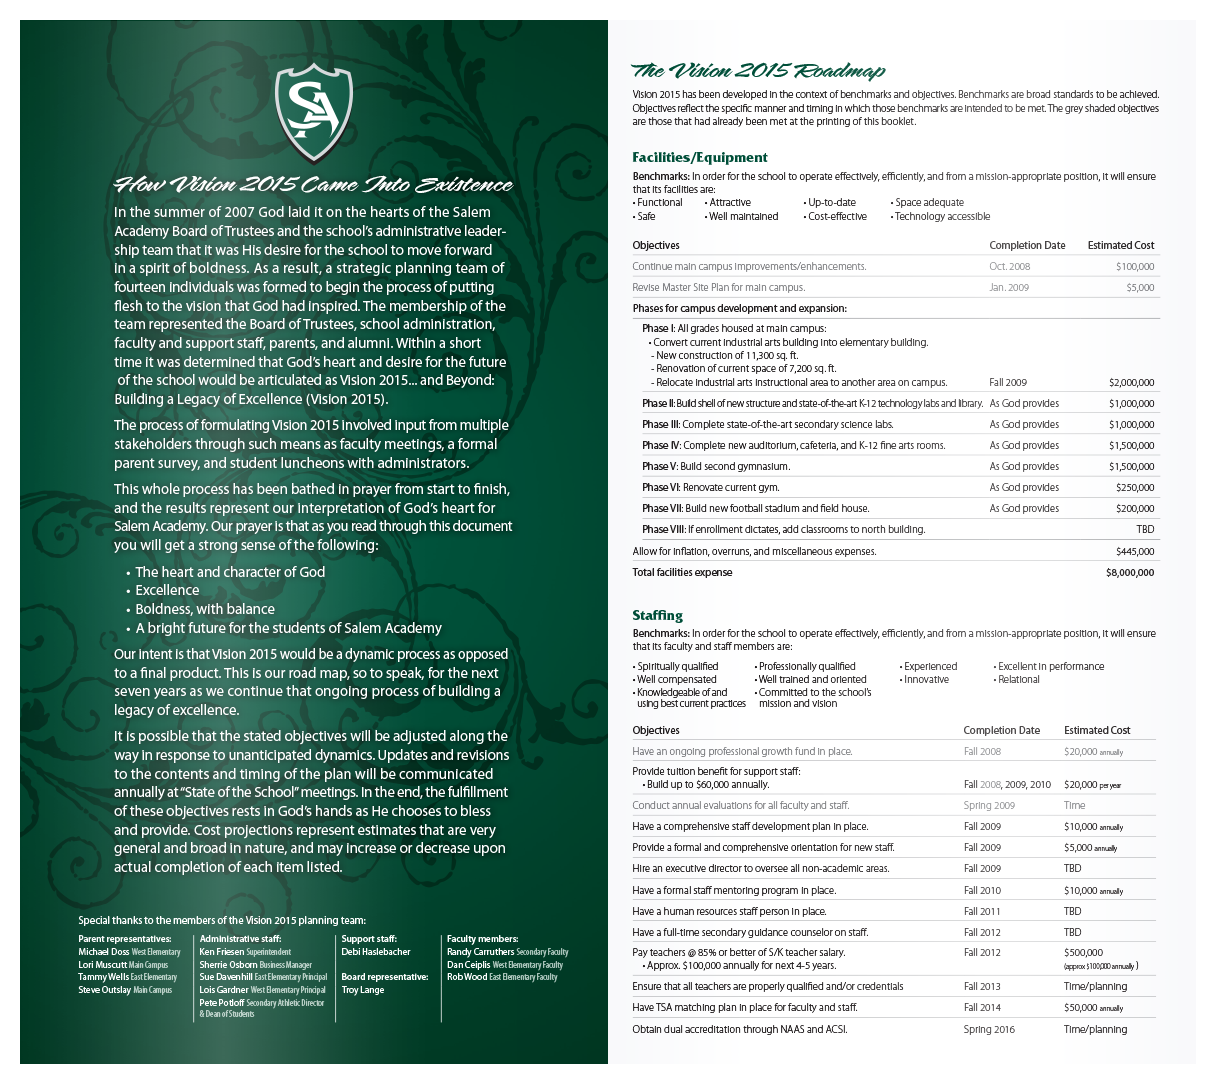 Salem_Academy_Booklet-3.png